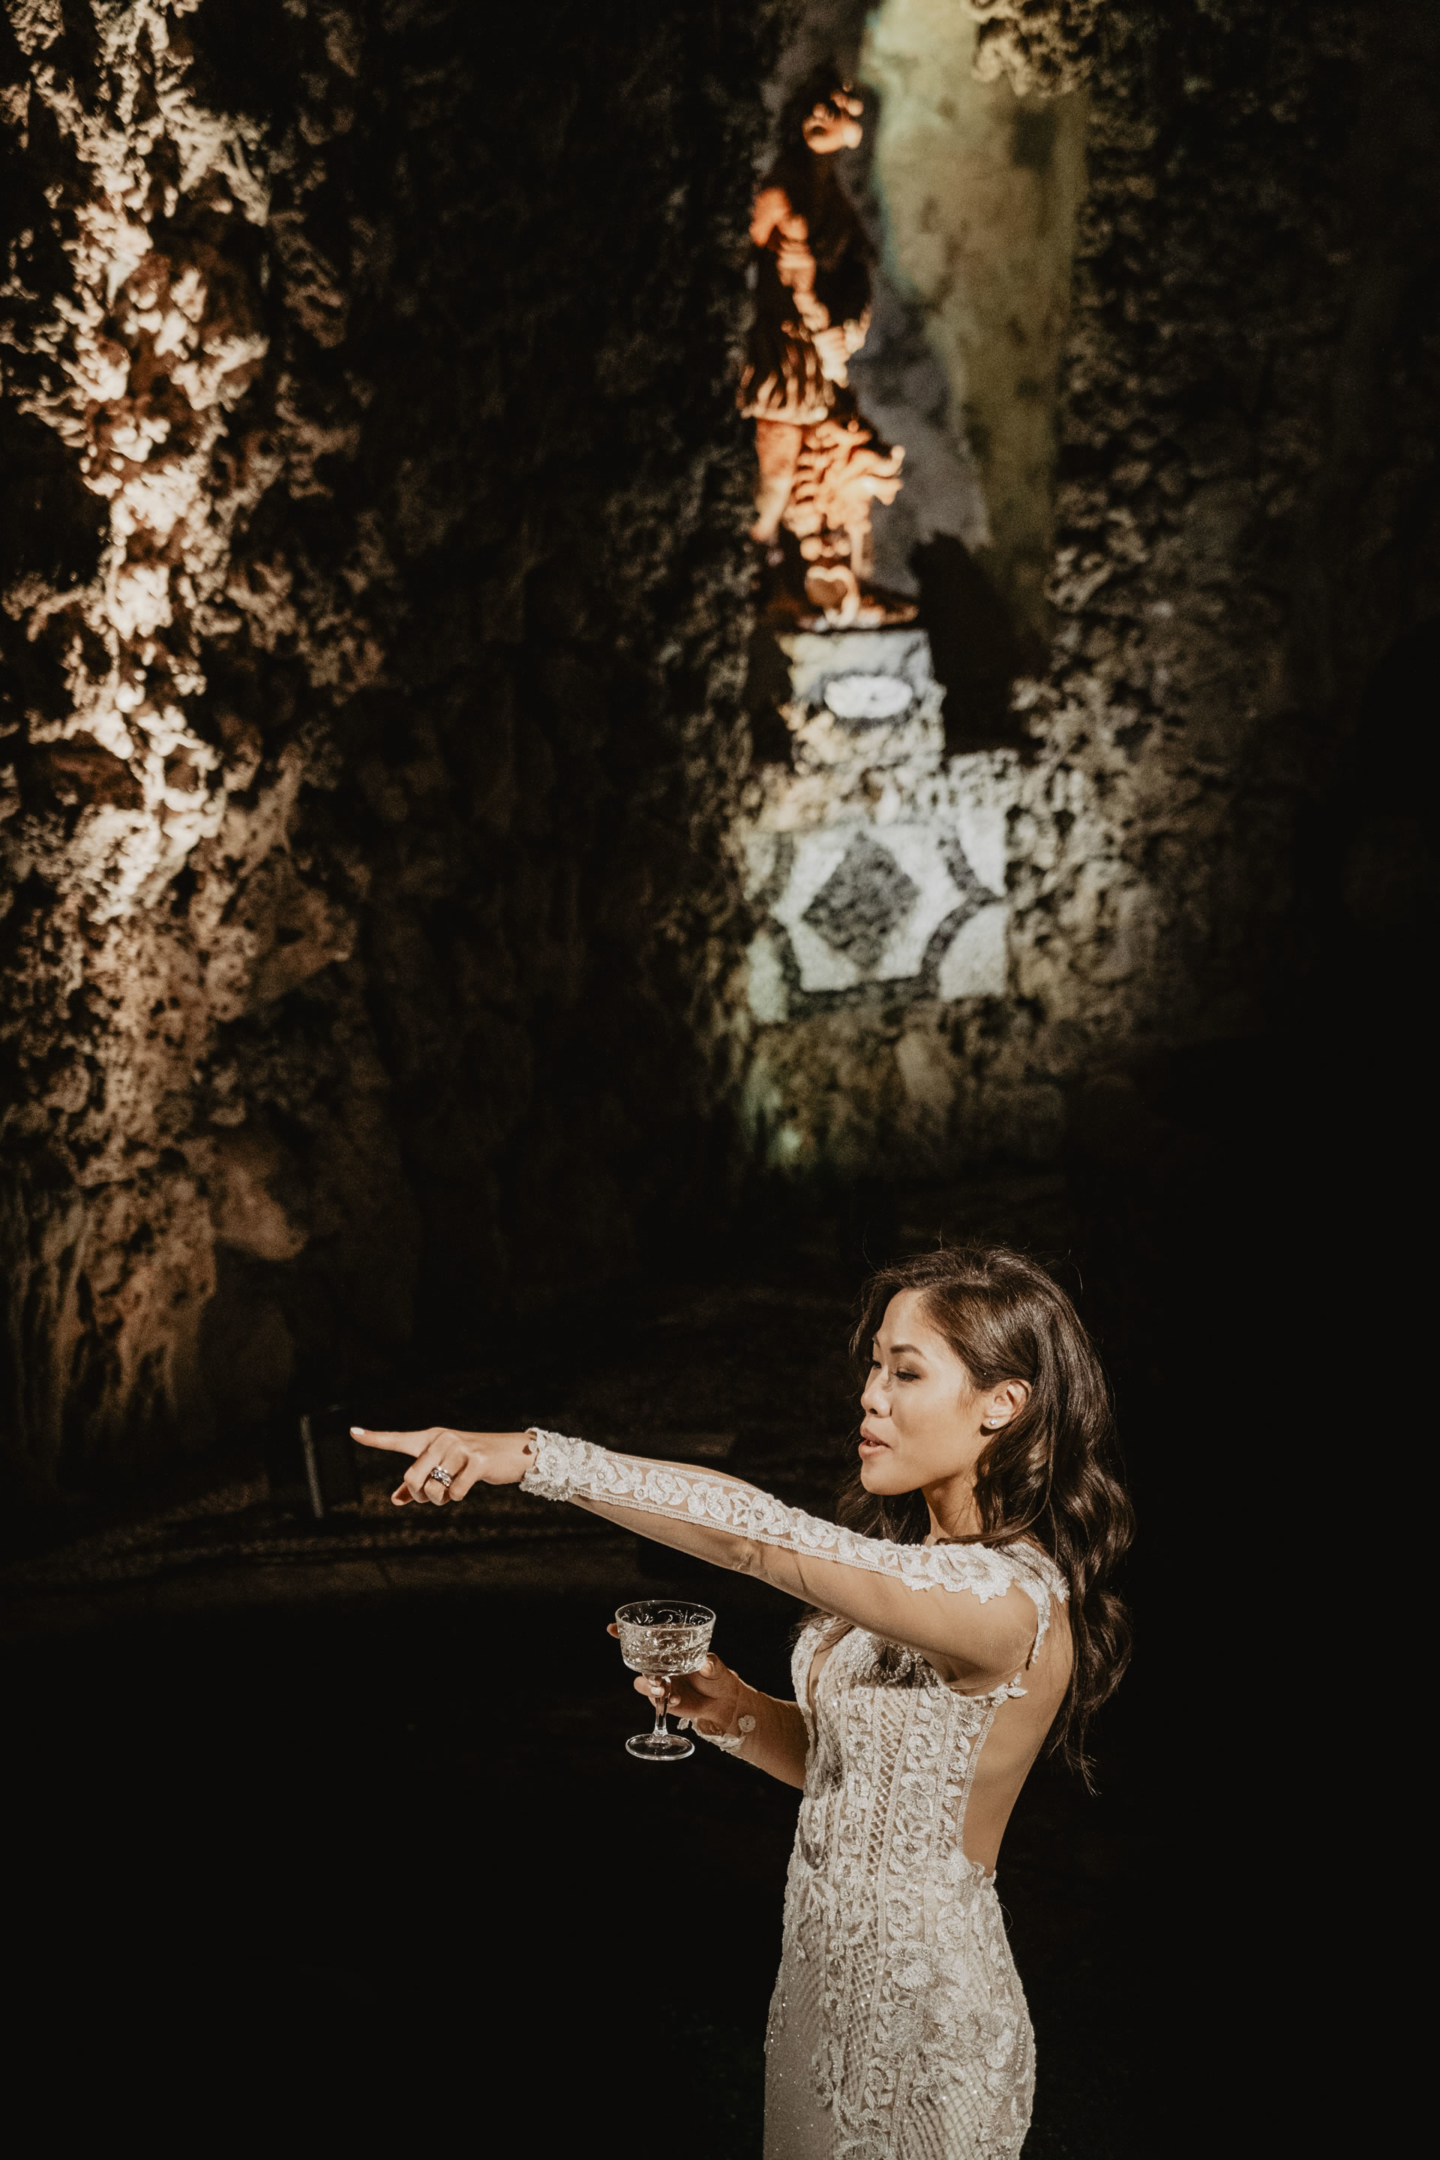 - 80 :: From Los angeles to Florence: a glamour asiatic wedding :: Luxury wedding photography - 79 ::  - 80